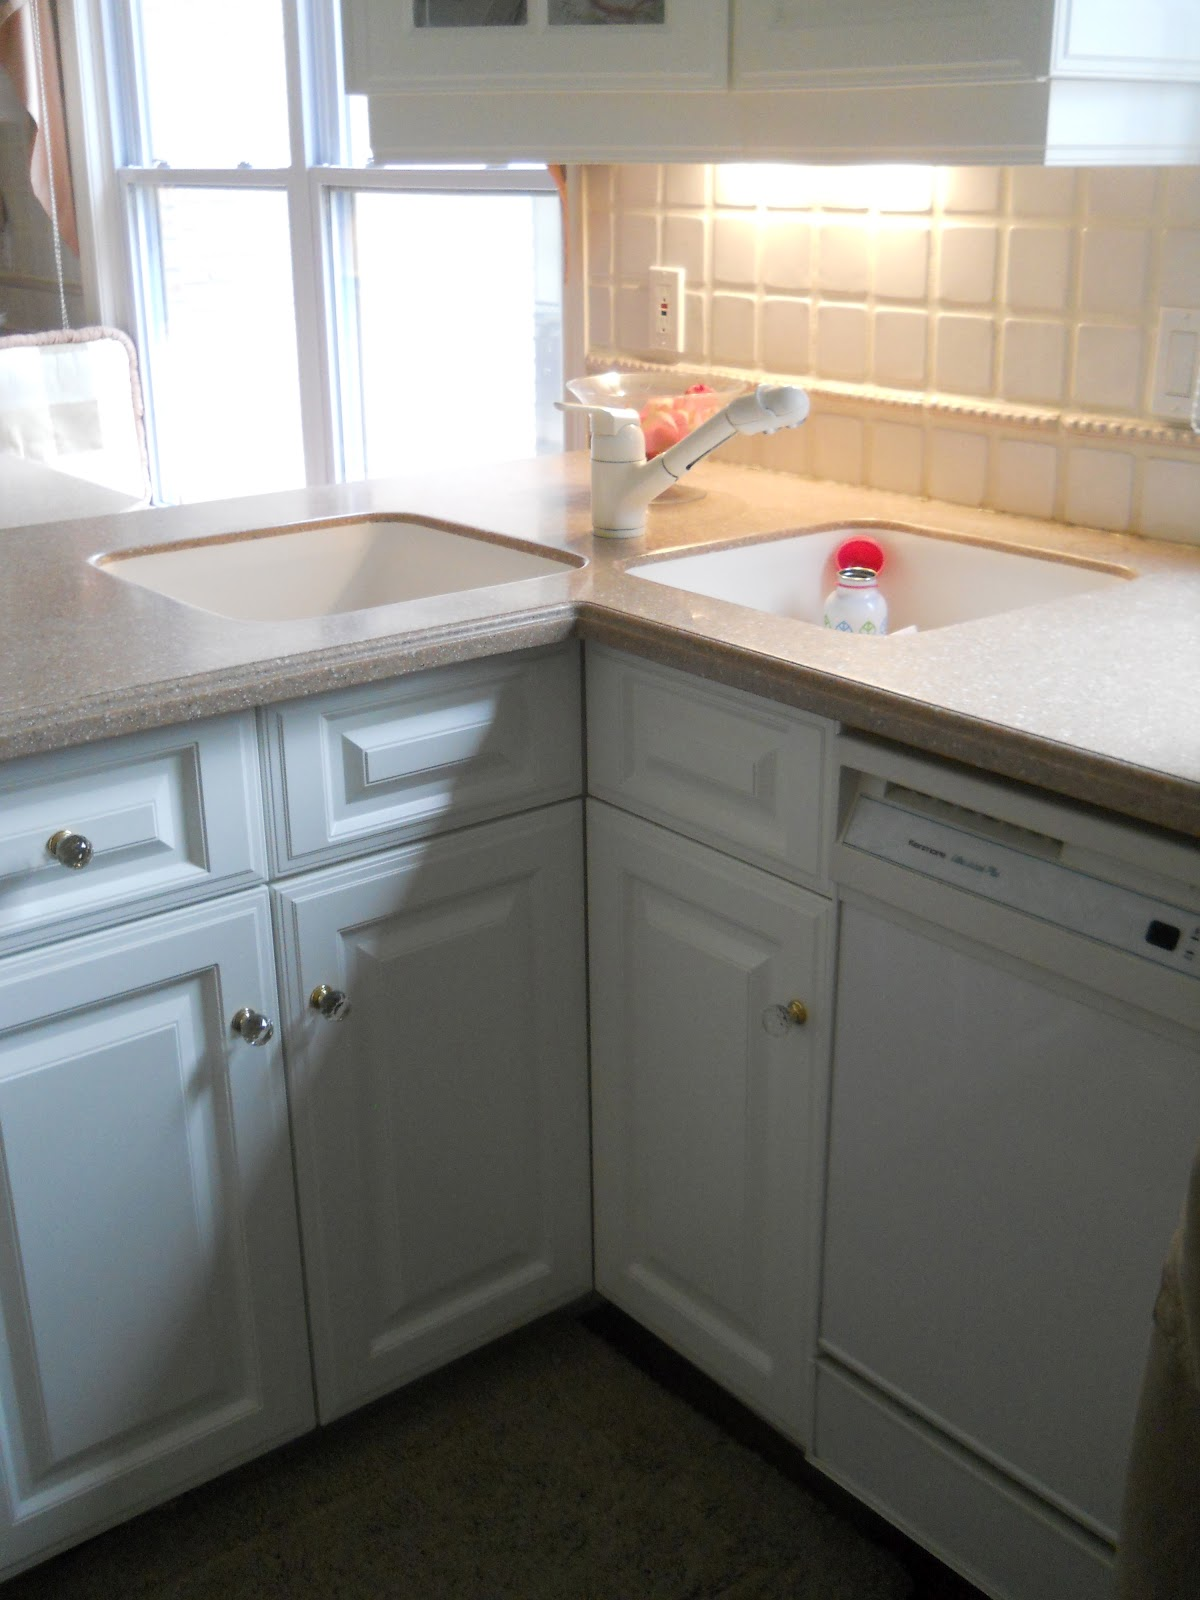 How To Clean Corian Sinks And Countertops Corian Sinks Cleaning Gallery Of Full Size Of How To